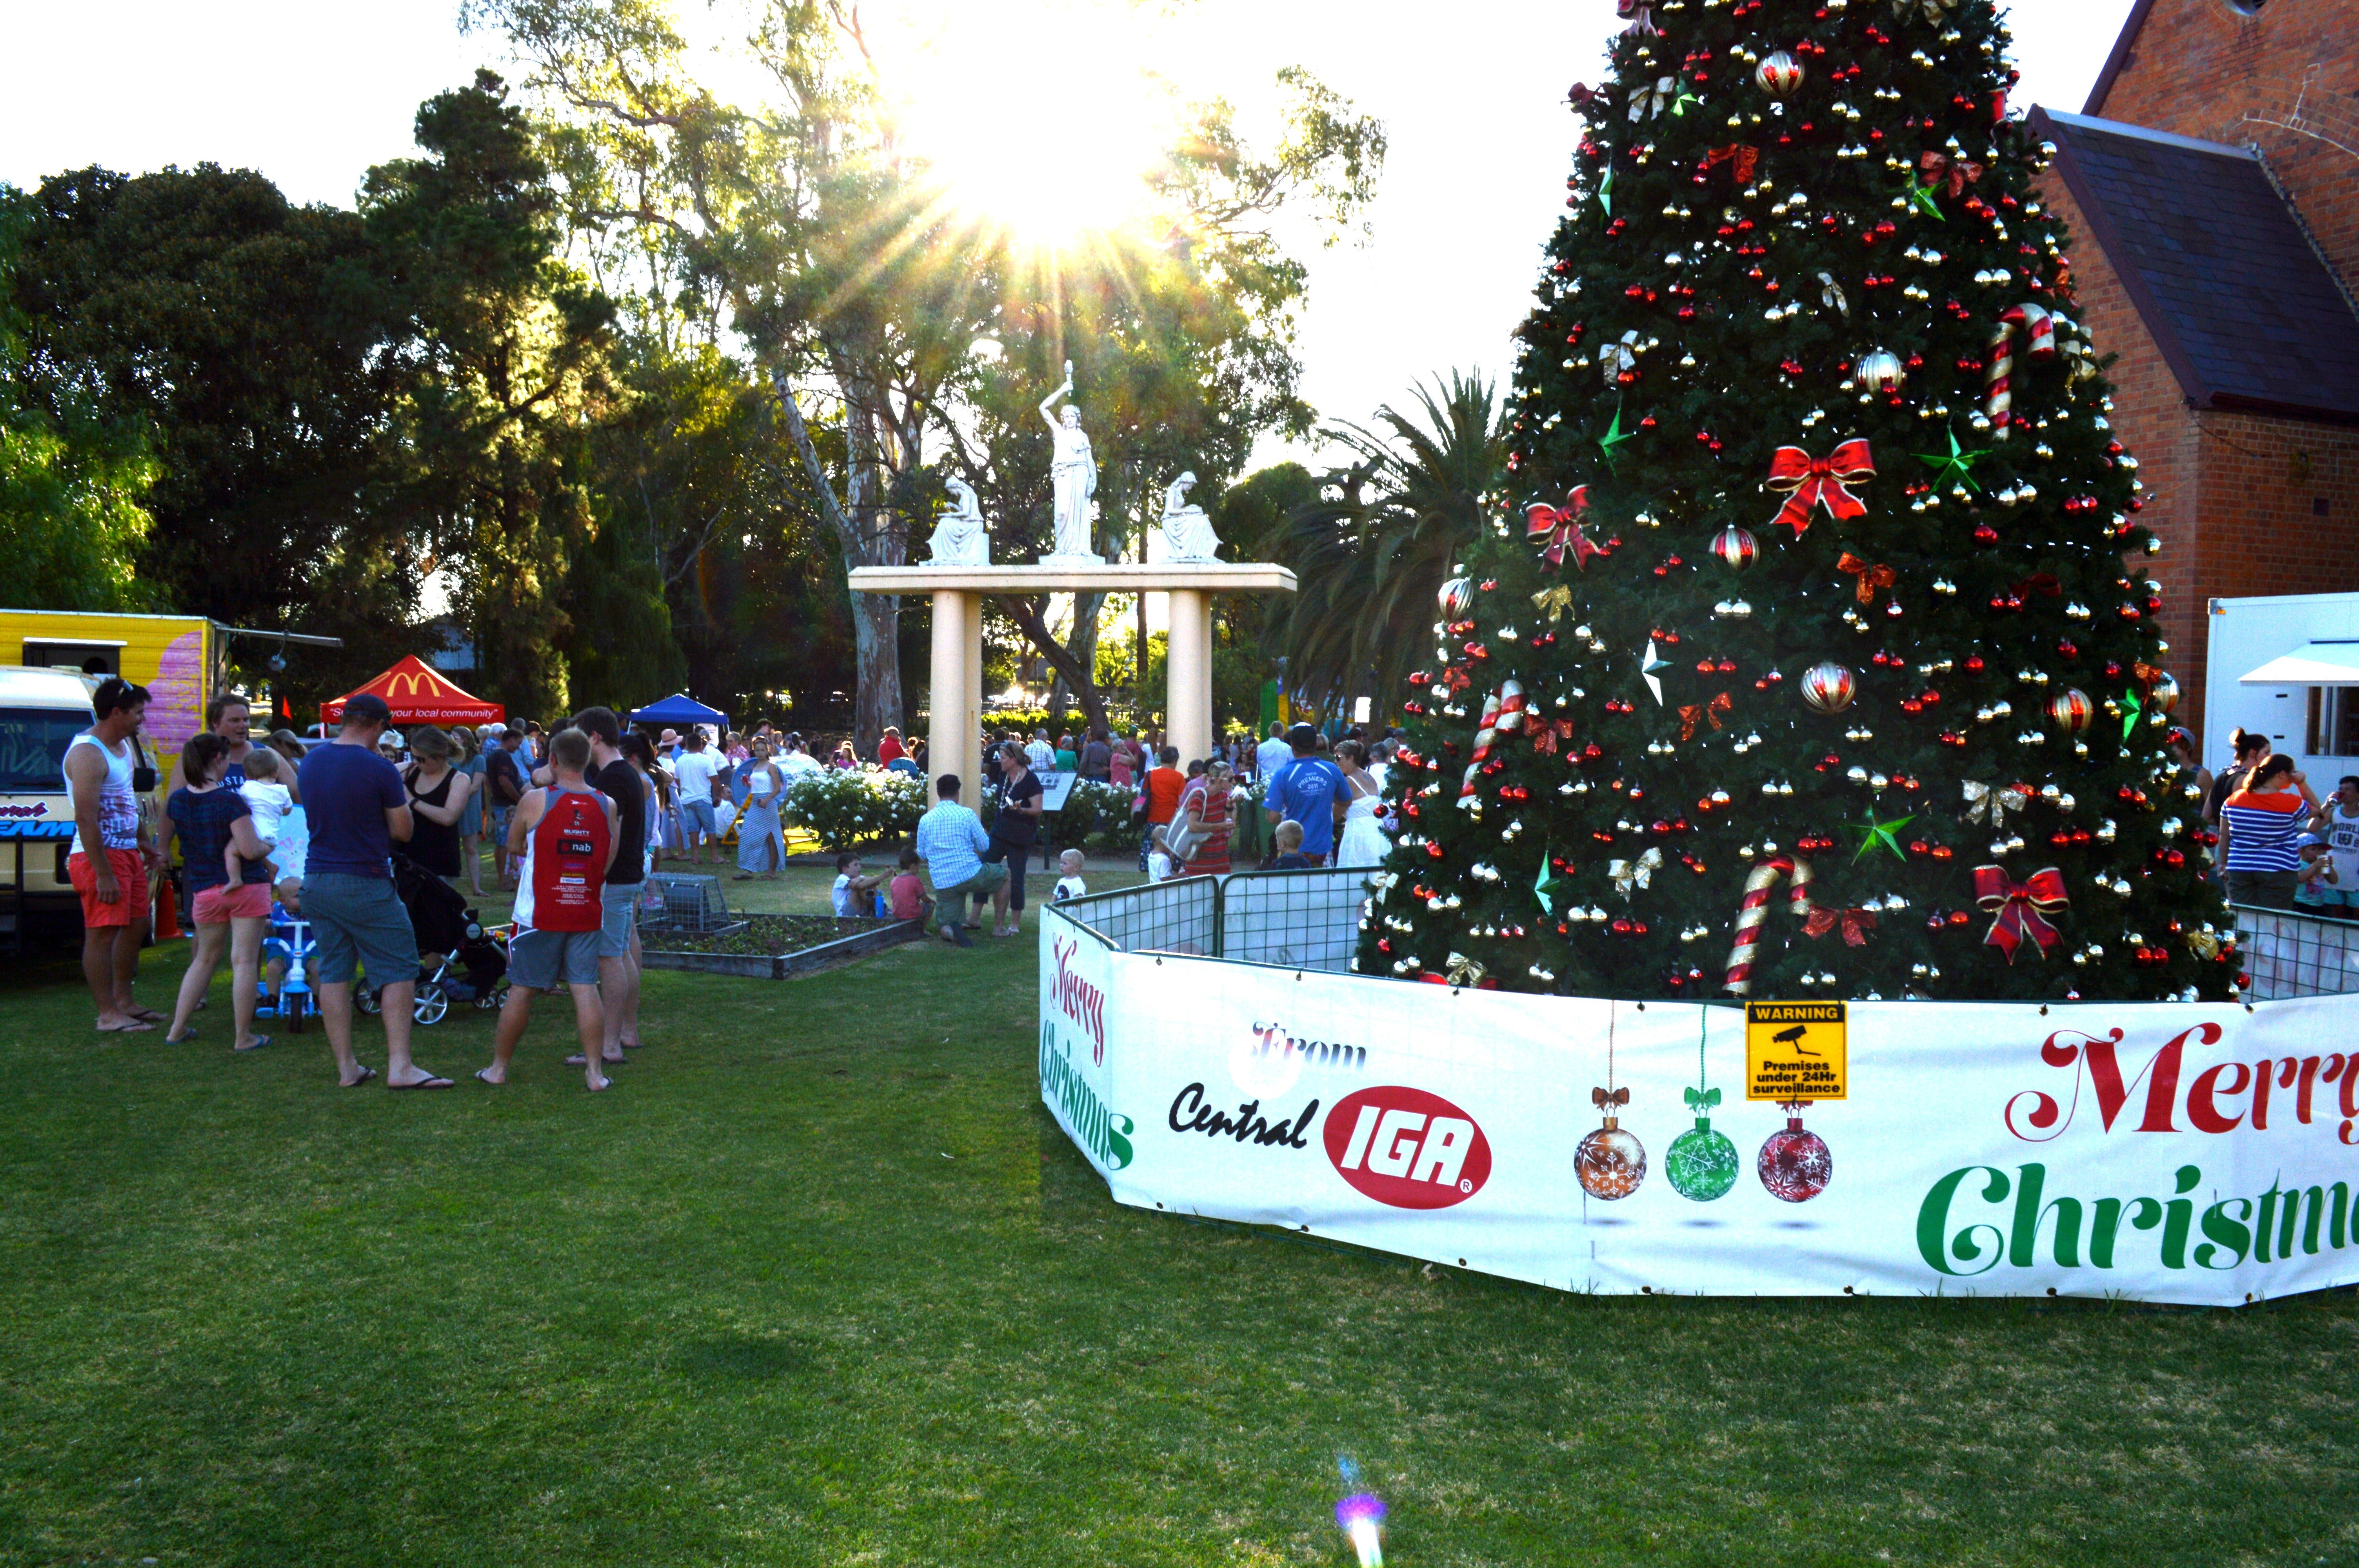 Community Christmas Party and Carols by Candlelight - Accommodation in Surfers Paradise